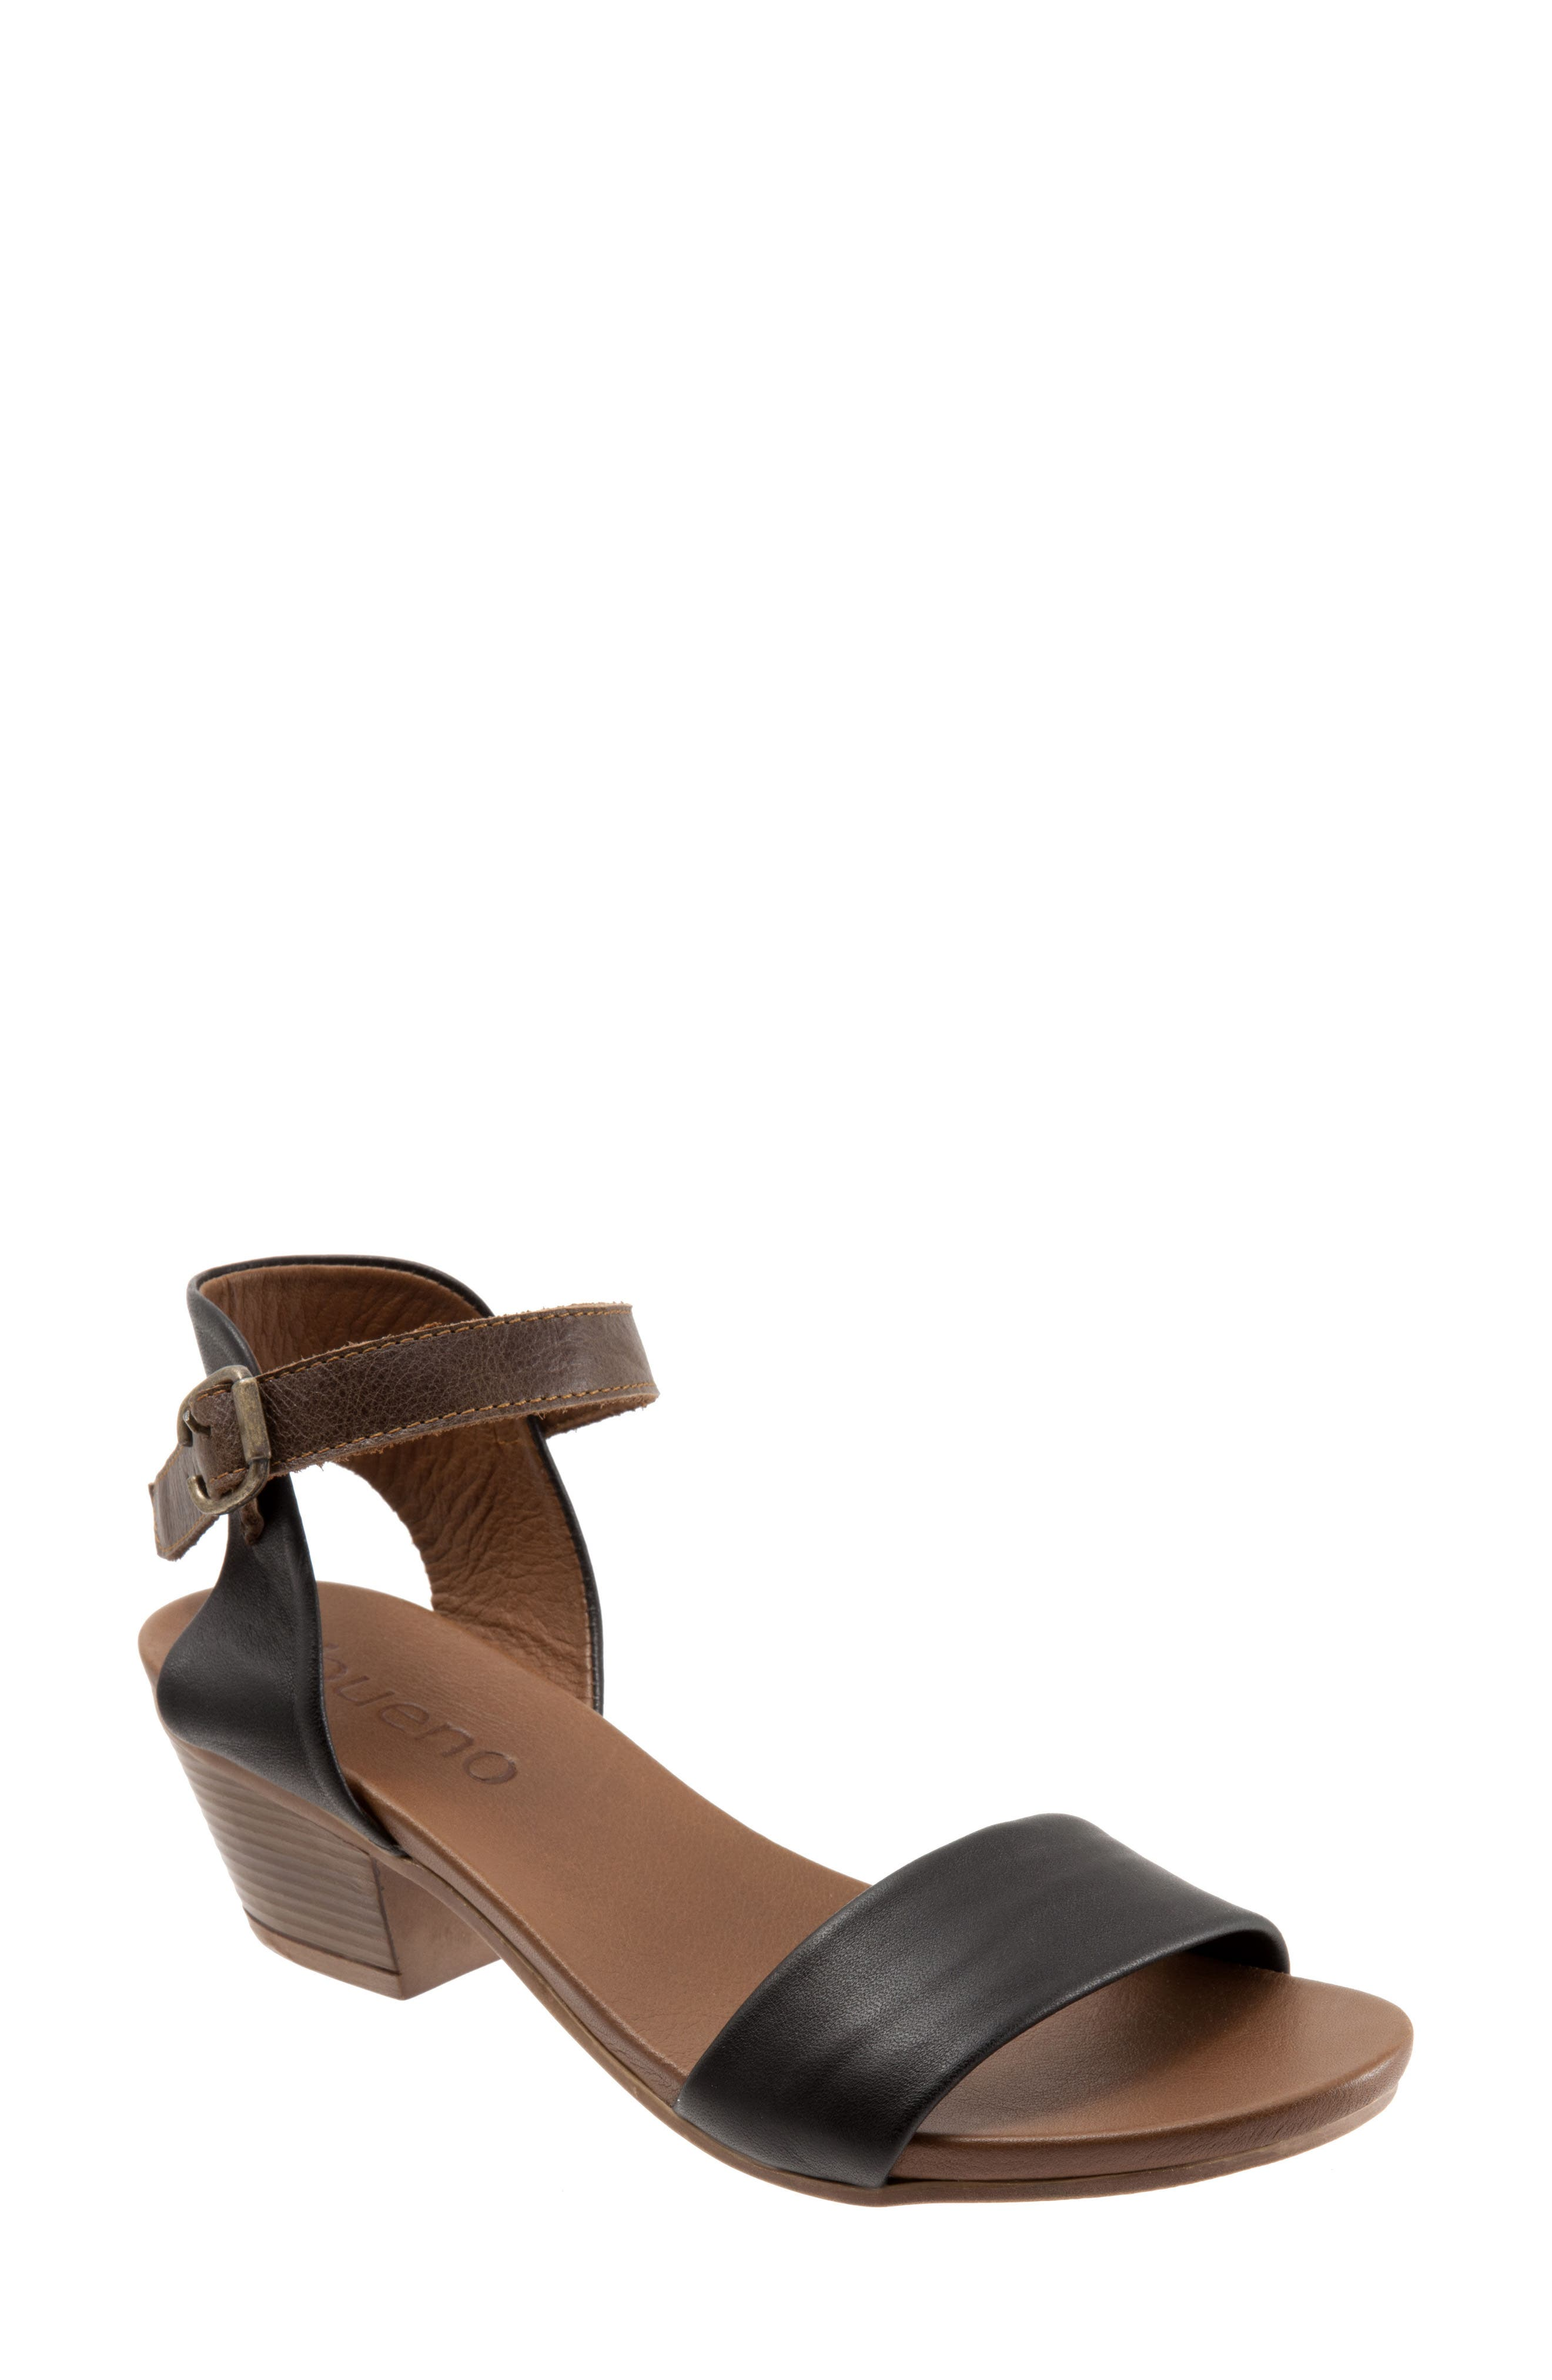 Sue Sandal,                         Main,                         color, BLACK LEATHER